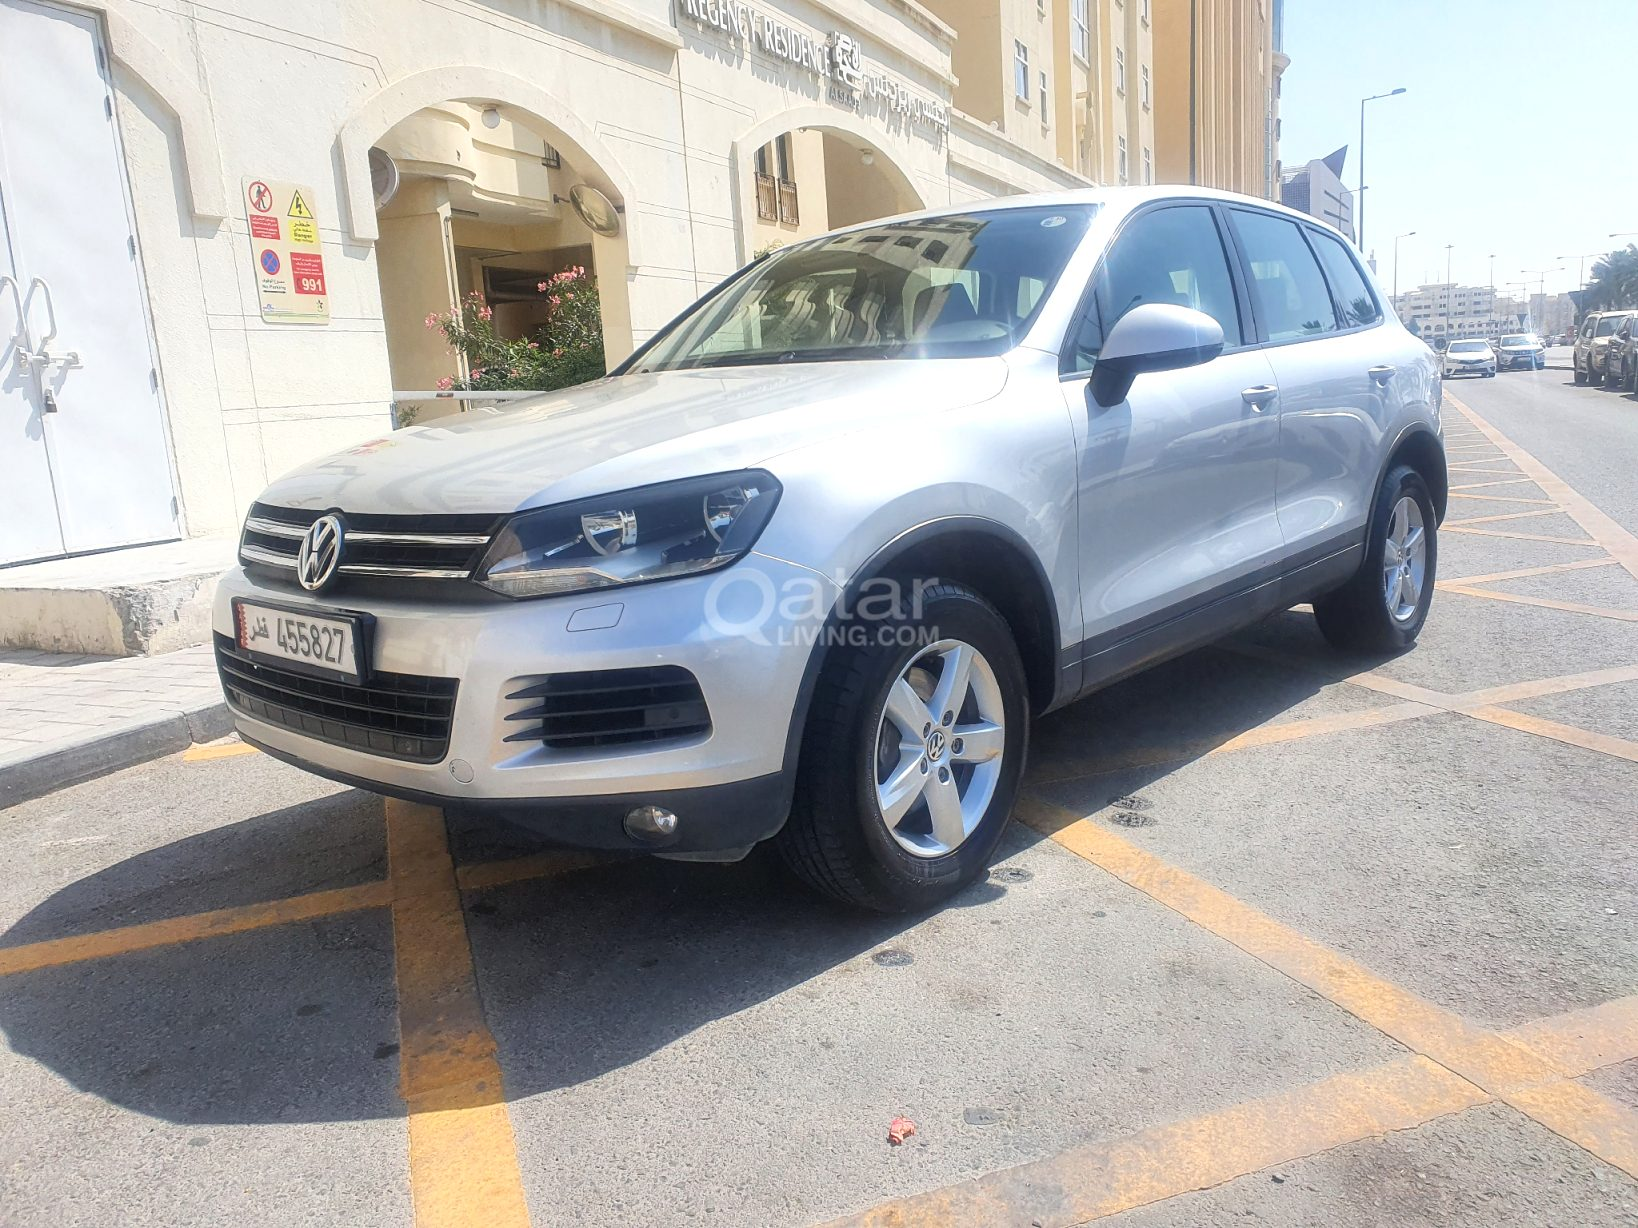 volkswagen touareg 2021 price in qatar Specs and Review